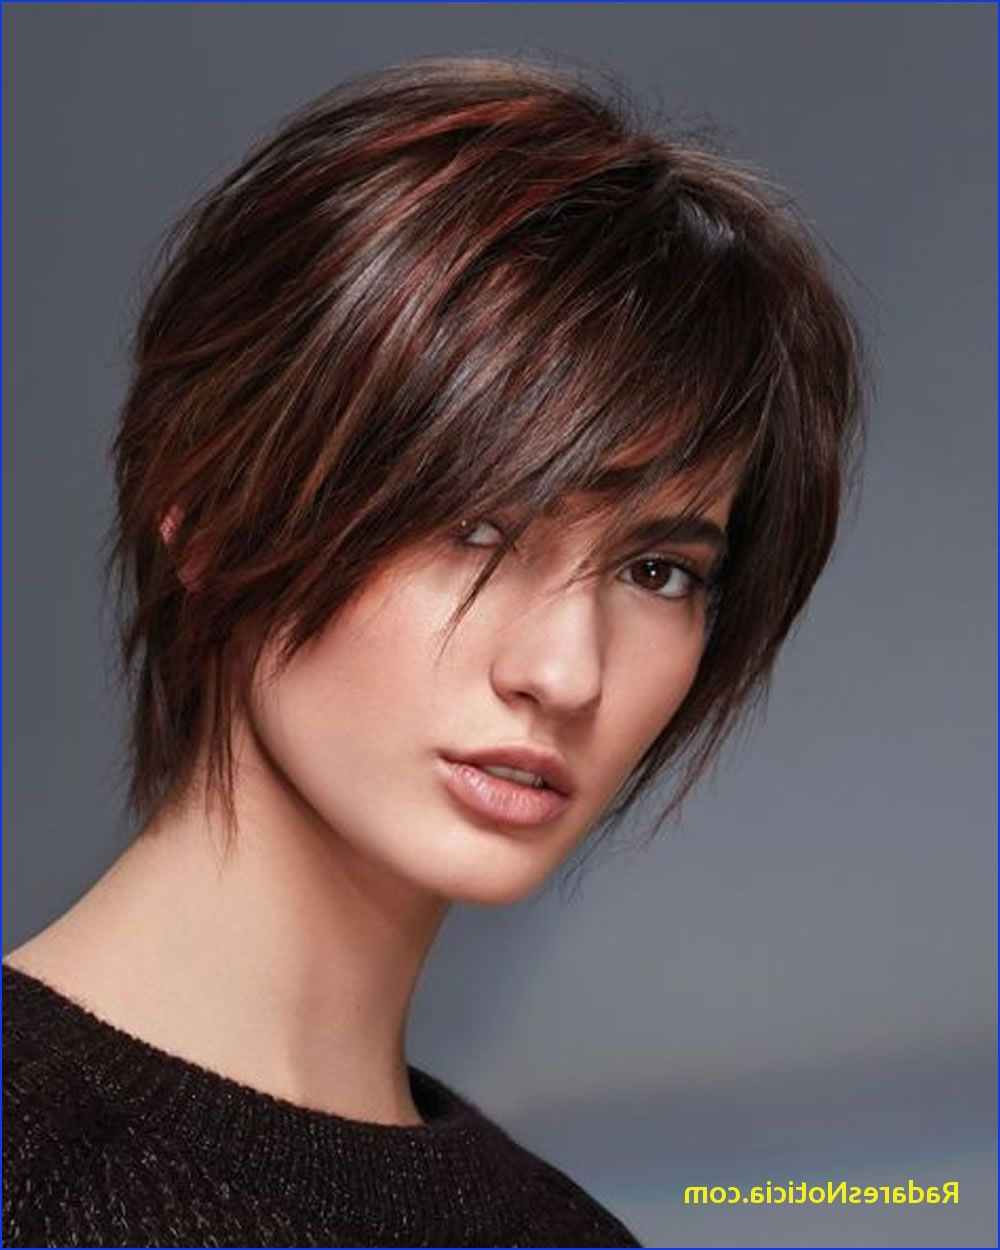 6 Best Short Hairstyles For Round Faces | Radaresnoticia Regarding Short Hairstyles With Bangs And Layers For Round Faces (Gallery 16 of 25)